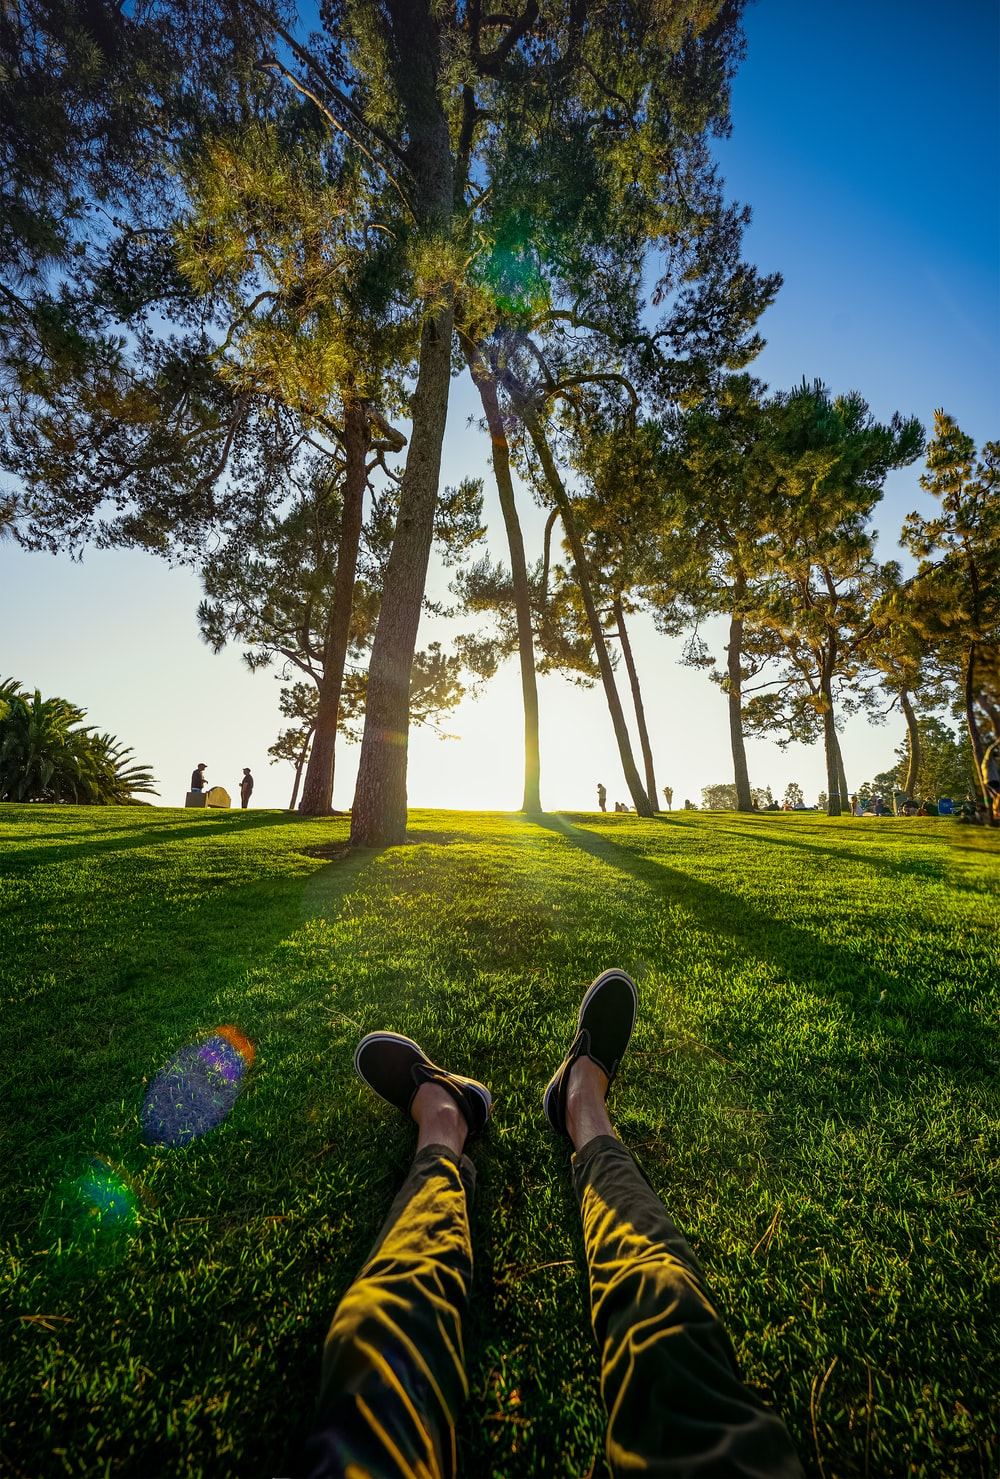 person in black shoes sitting on grass field near trees during daytime